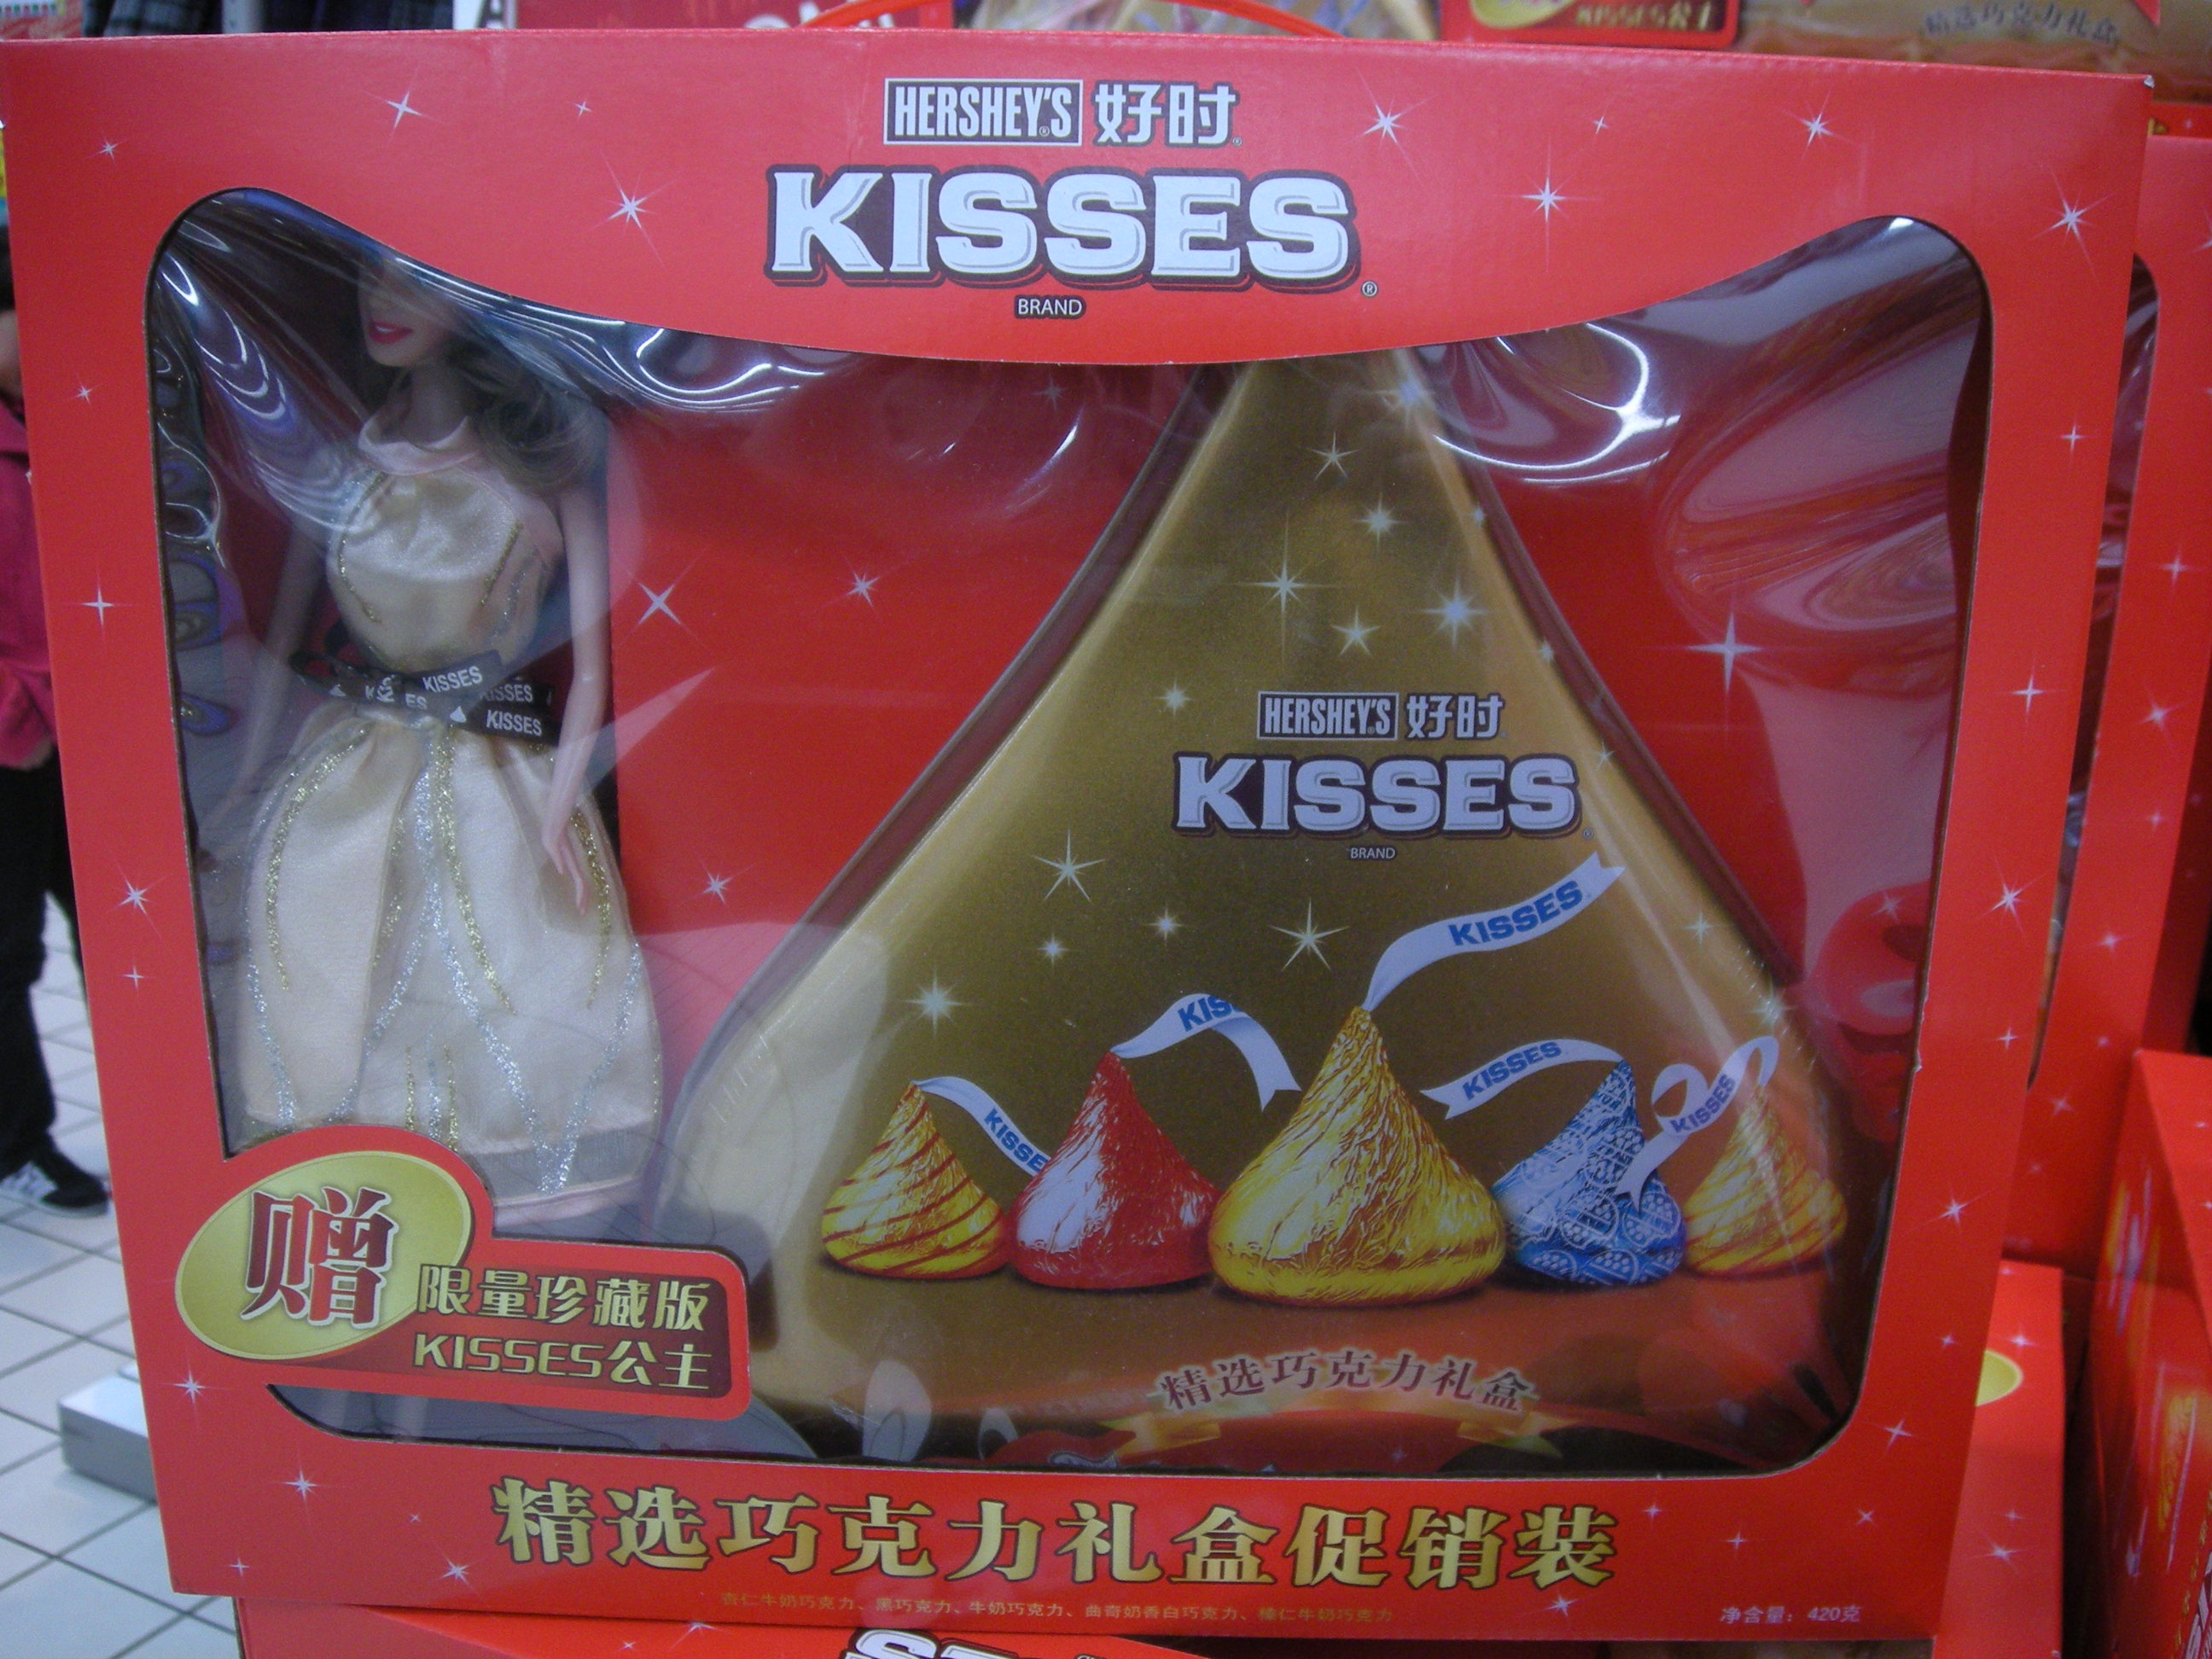 hersheys barby Hersheys Promo in China   Doll as GWP